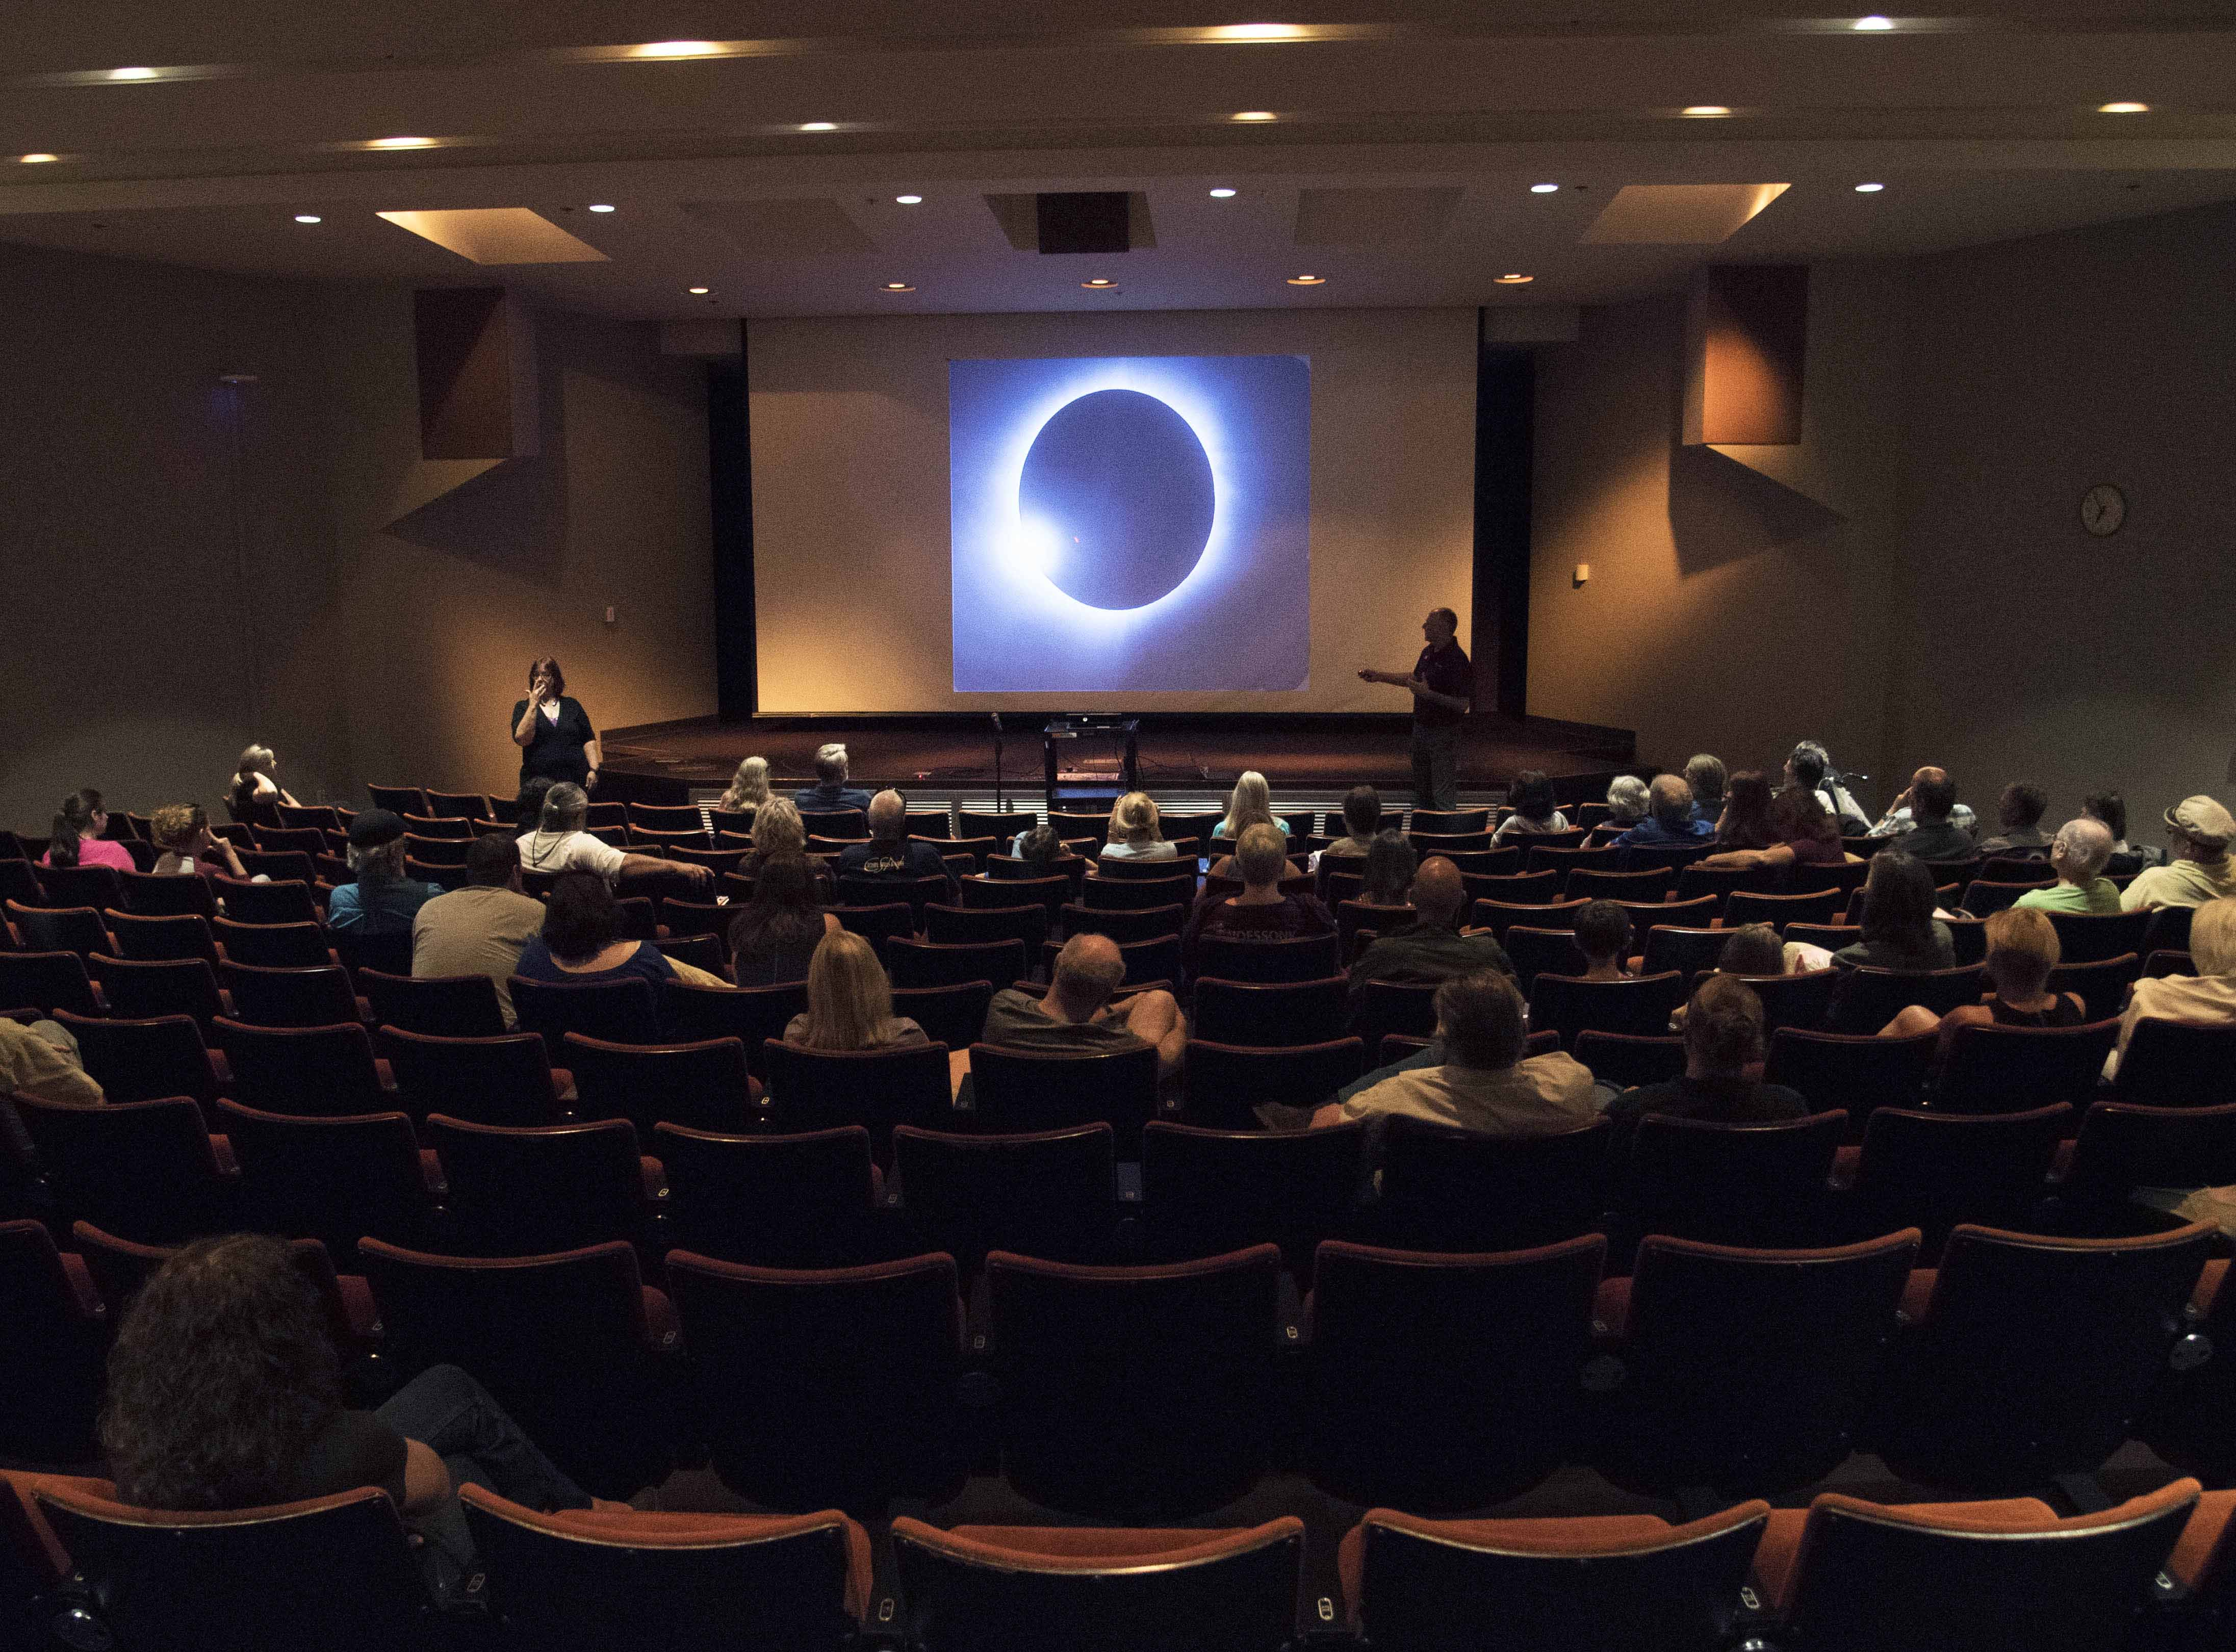 Bob Baer, co-chairman of the Solar Eclipse Steering Committee for SIU, displays a total solar eclipse during his presentation Sunday, Aug. 21, 2016, at the Eclipse 2017: One Year Countdown event in the Student Center Auditorium. (Morgan Timms | @morgan_timms)